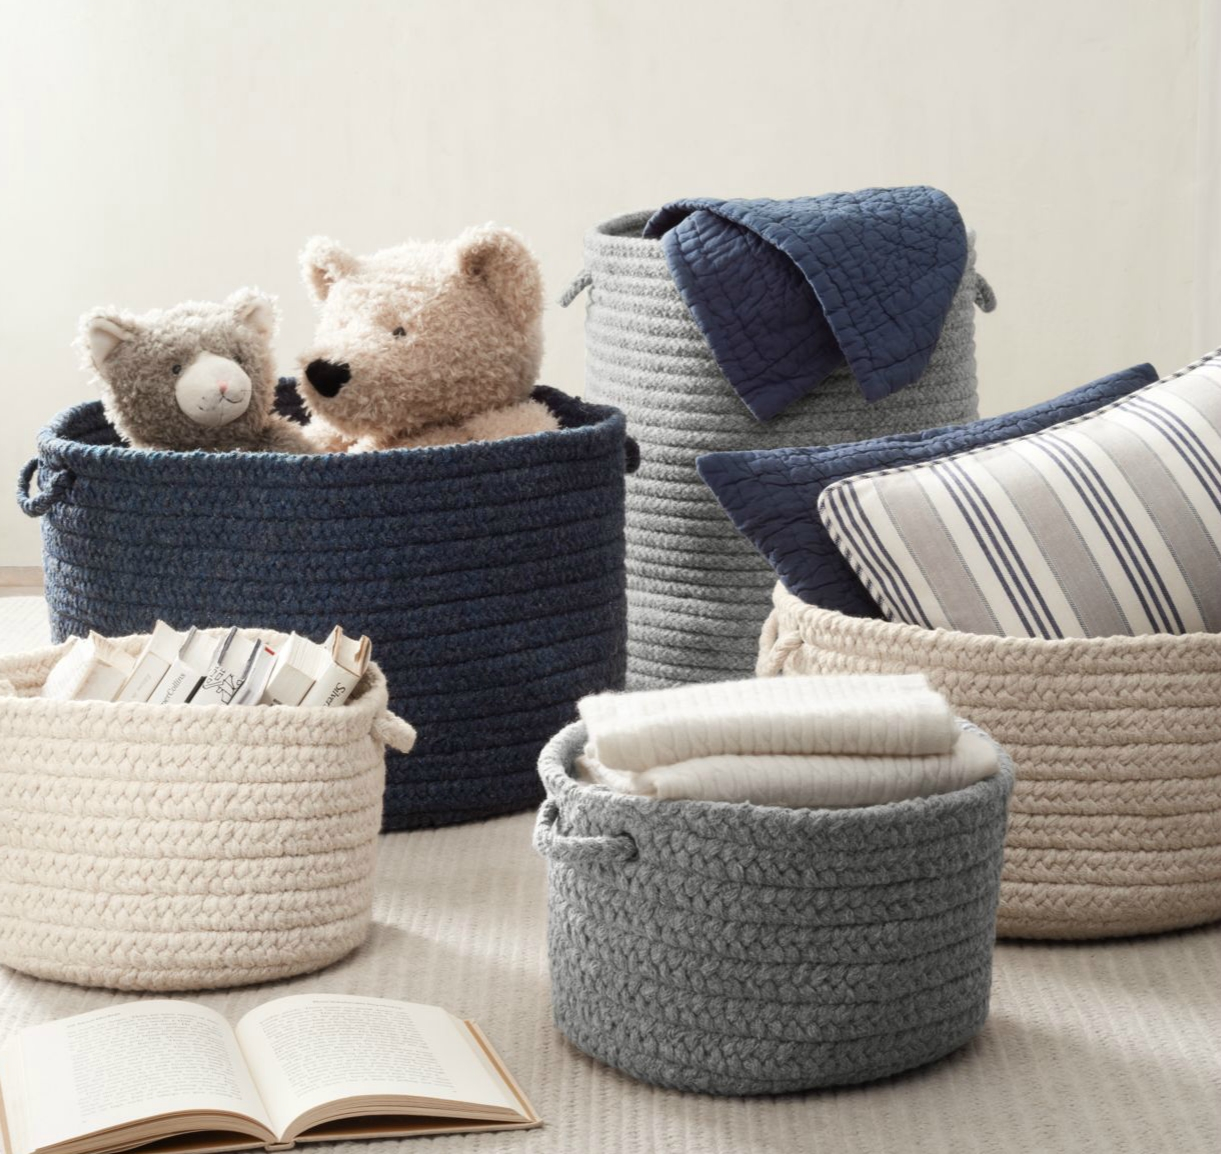 Braided baskets from RH Baby & Child